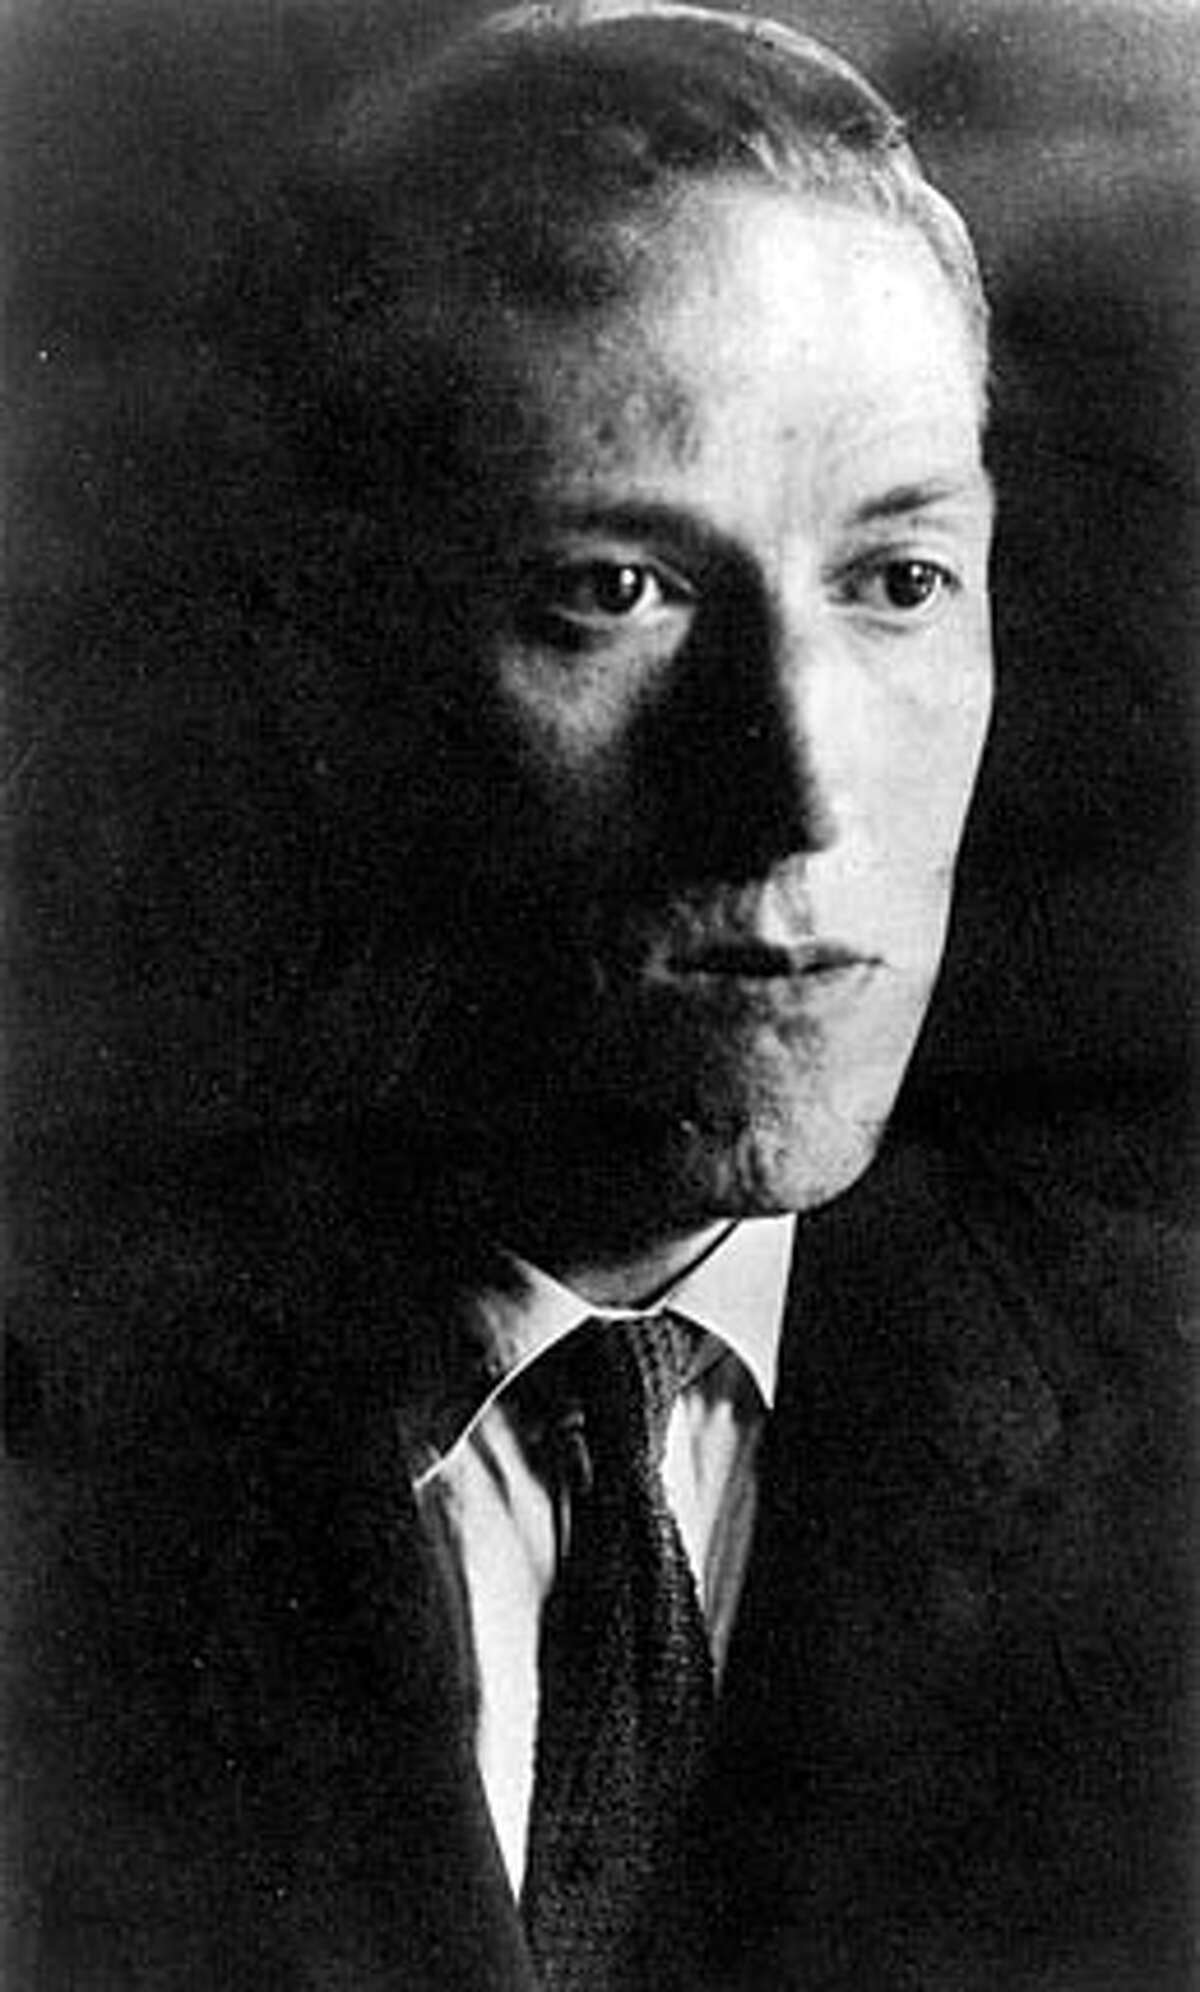 """H.P. Lovecraft from """"The Collected Stories of H.P. Lovecraft"""" (The Library of America) FOR USE WITH BOOK REVIEW ONLY"""